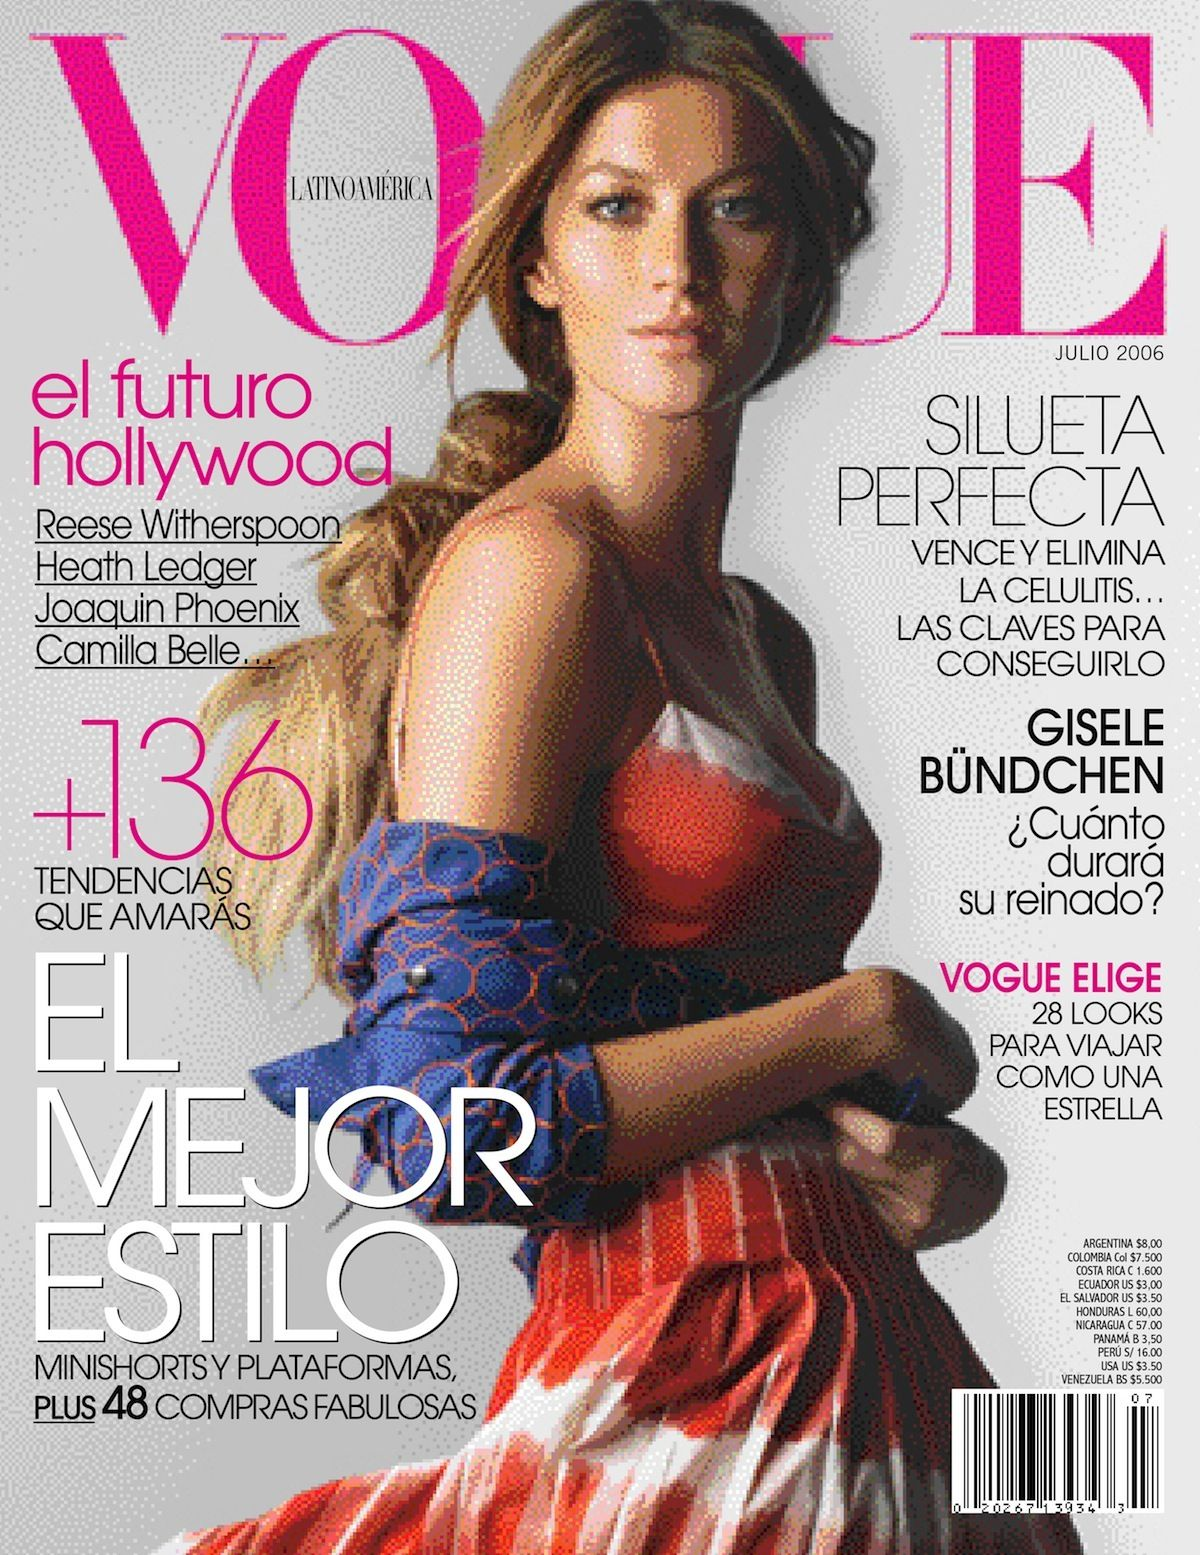 vogue Gisele bundchen